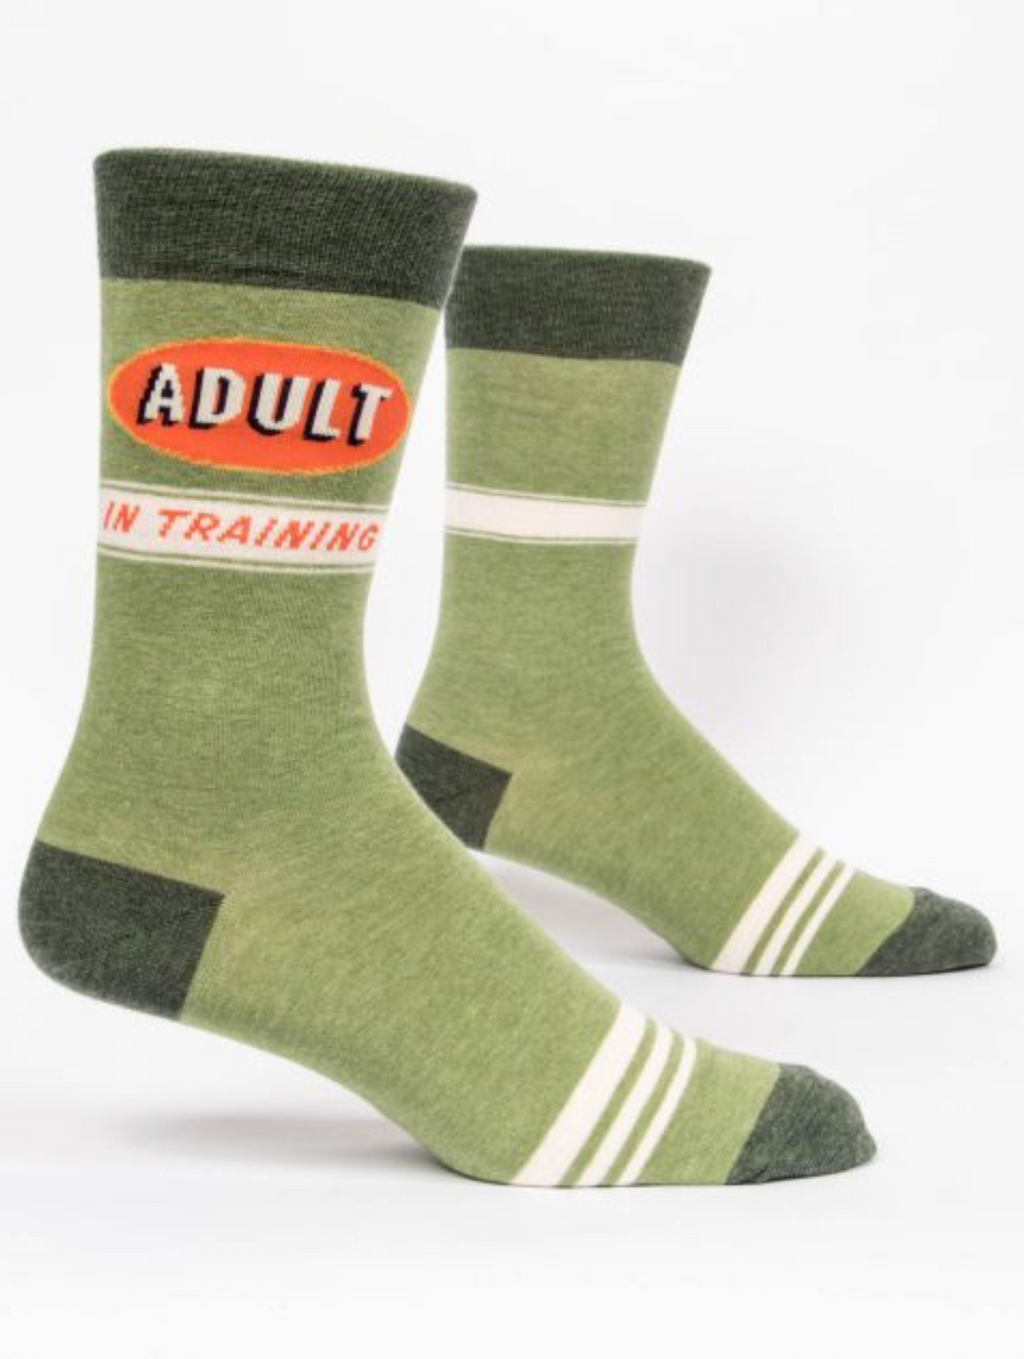 Blue Q Men's Socks- Adult in Training